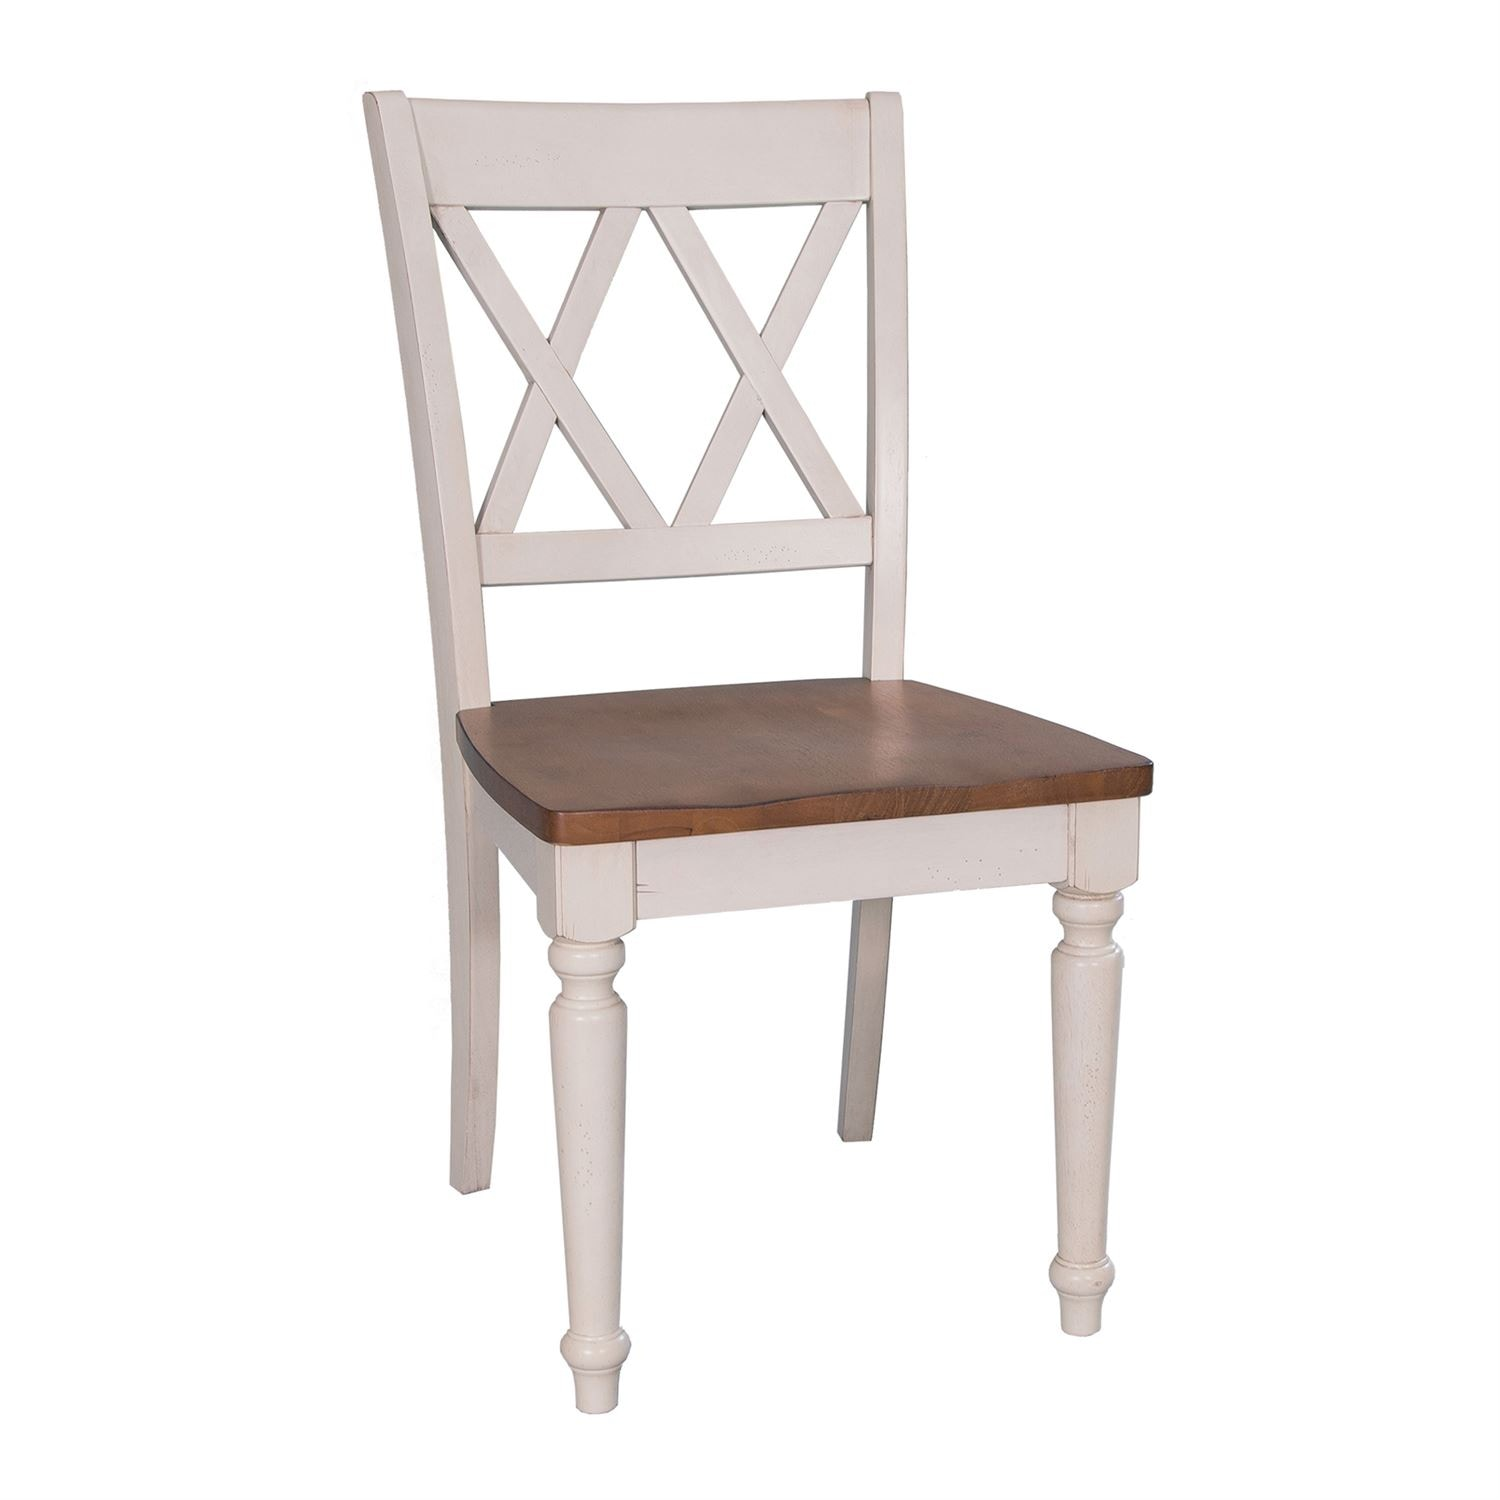 double x back chairs chair covers wholesale johannesburg dining room side rta vergennes vt e274672